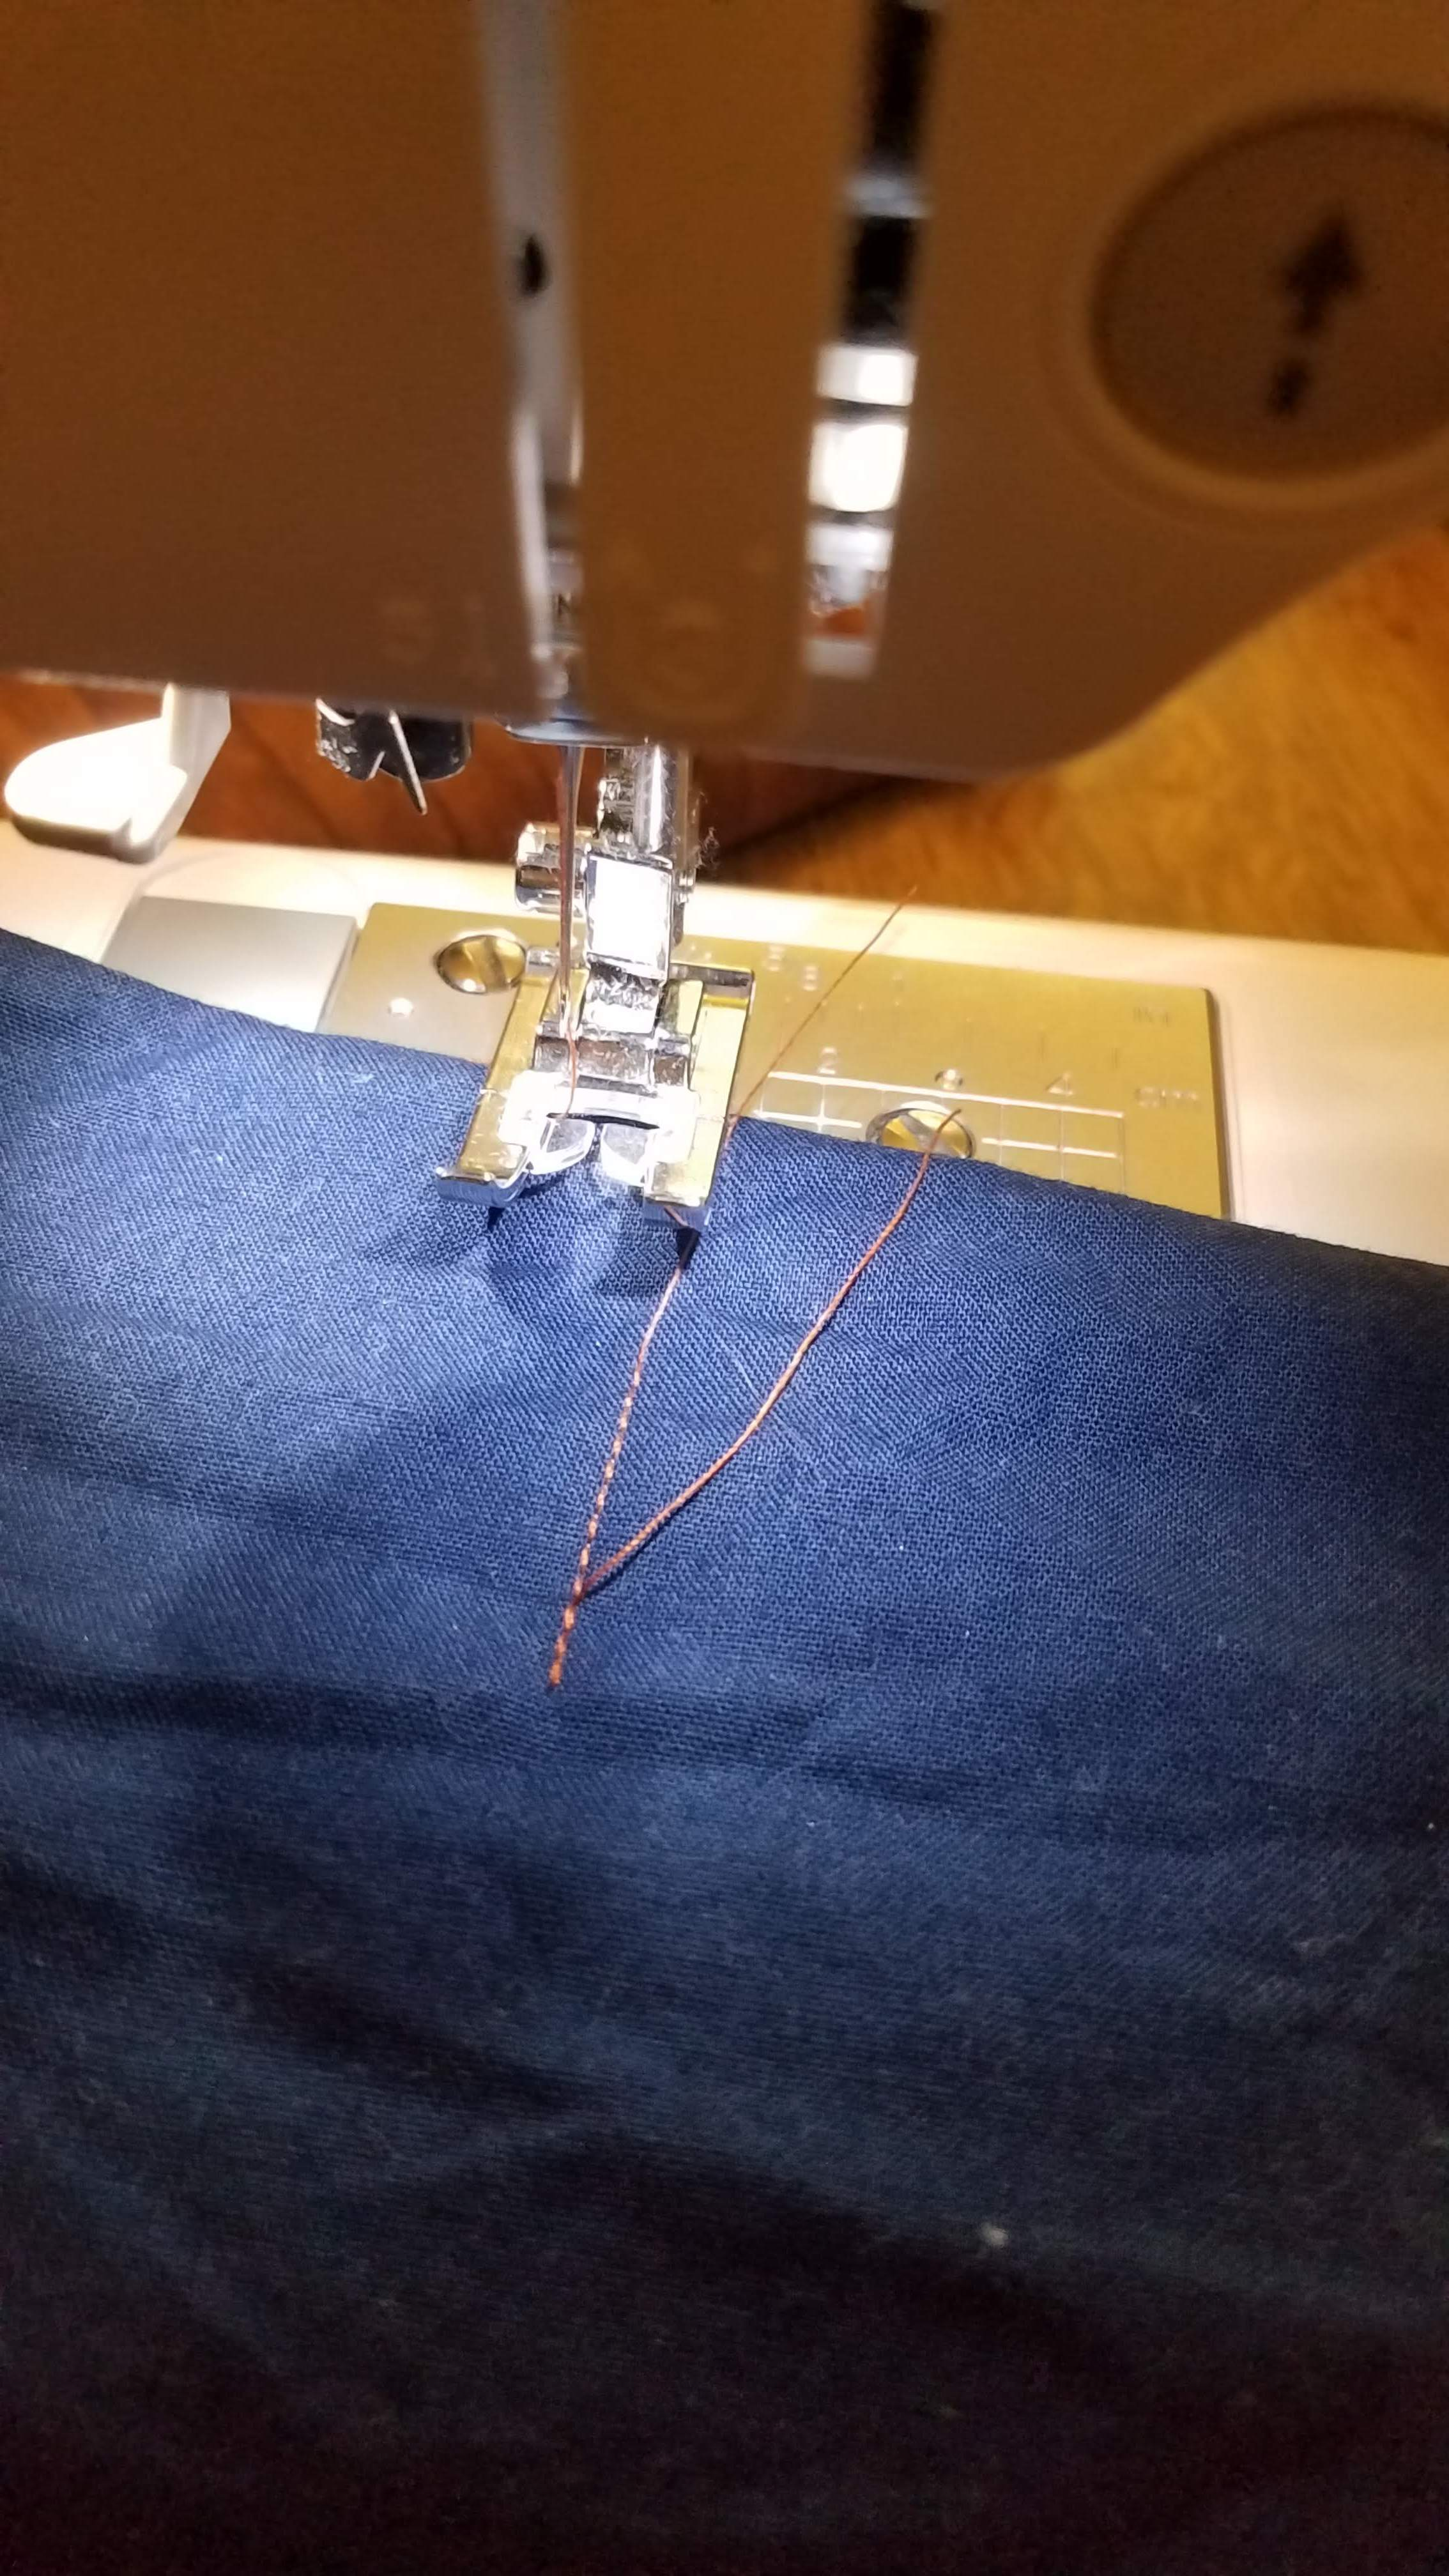 Test your tension - If you haven't sewn on your machine for a while.